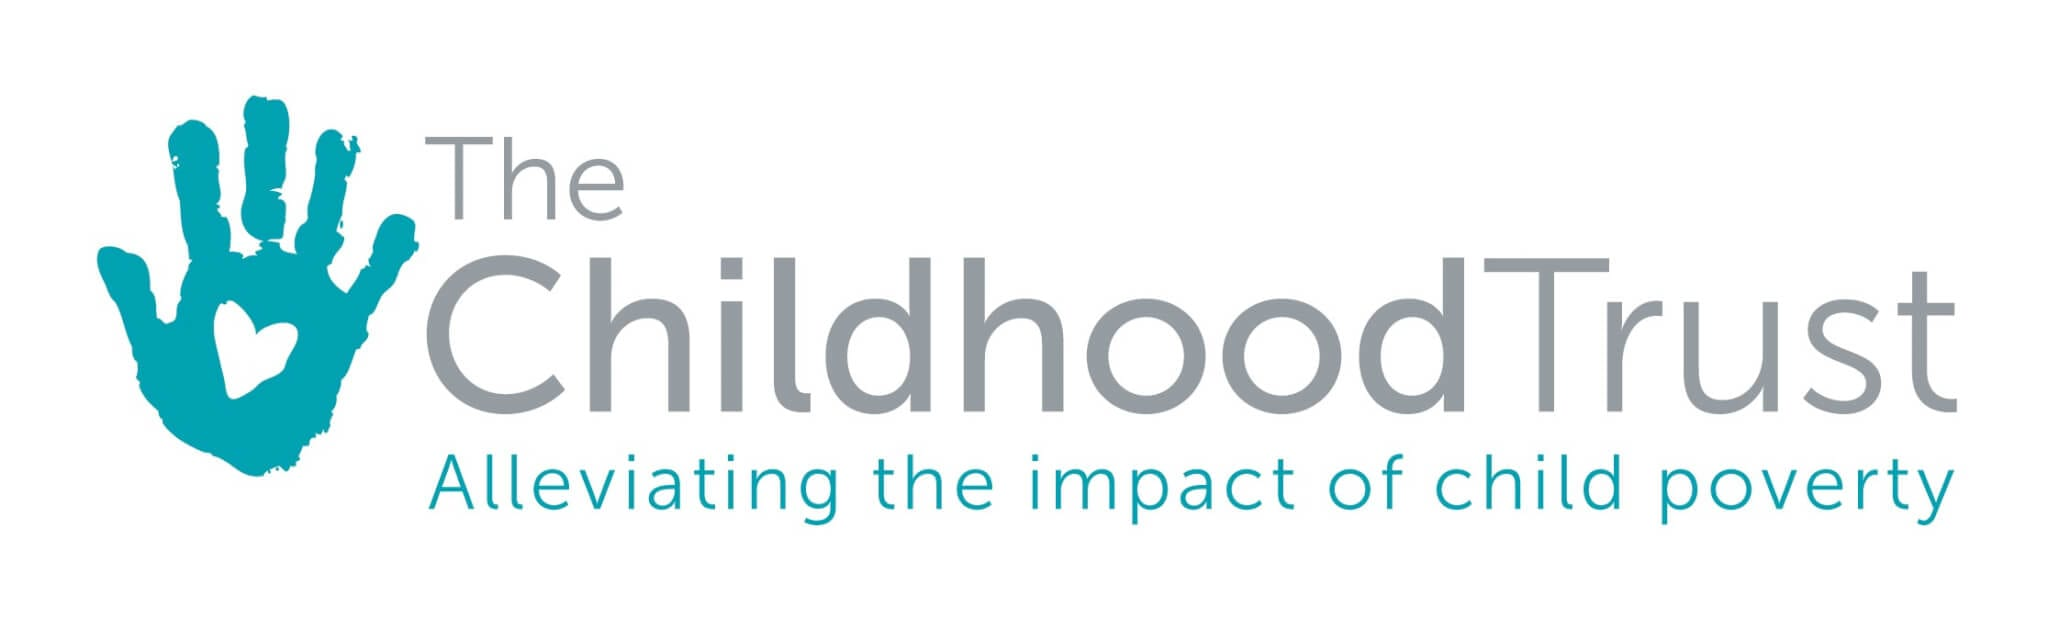 the childhoodtrust